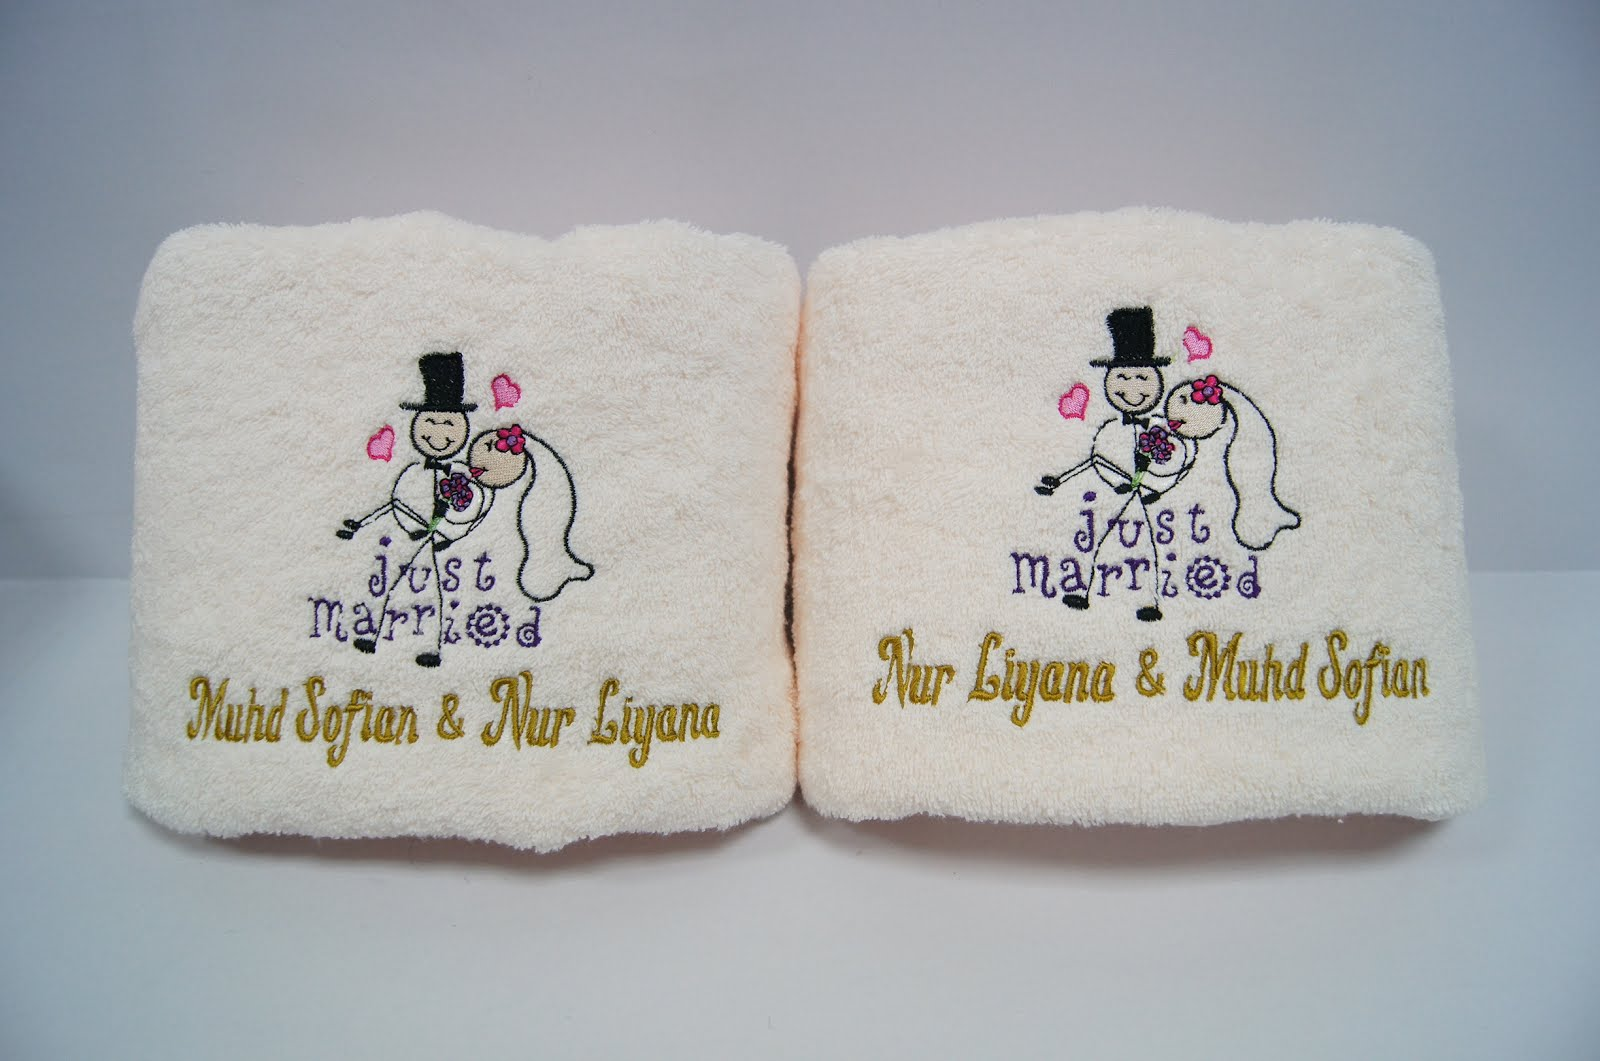 Wedding Gifts For Couples In Singapore : ... Personalized Gifts: Personalized Towel Embroidery Gifts in Singapore